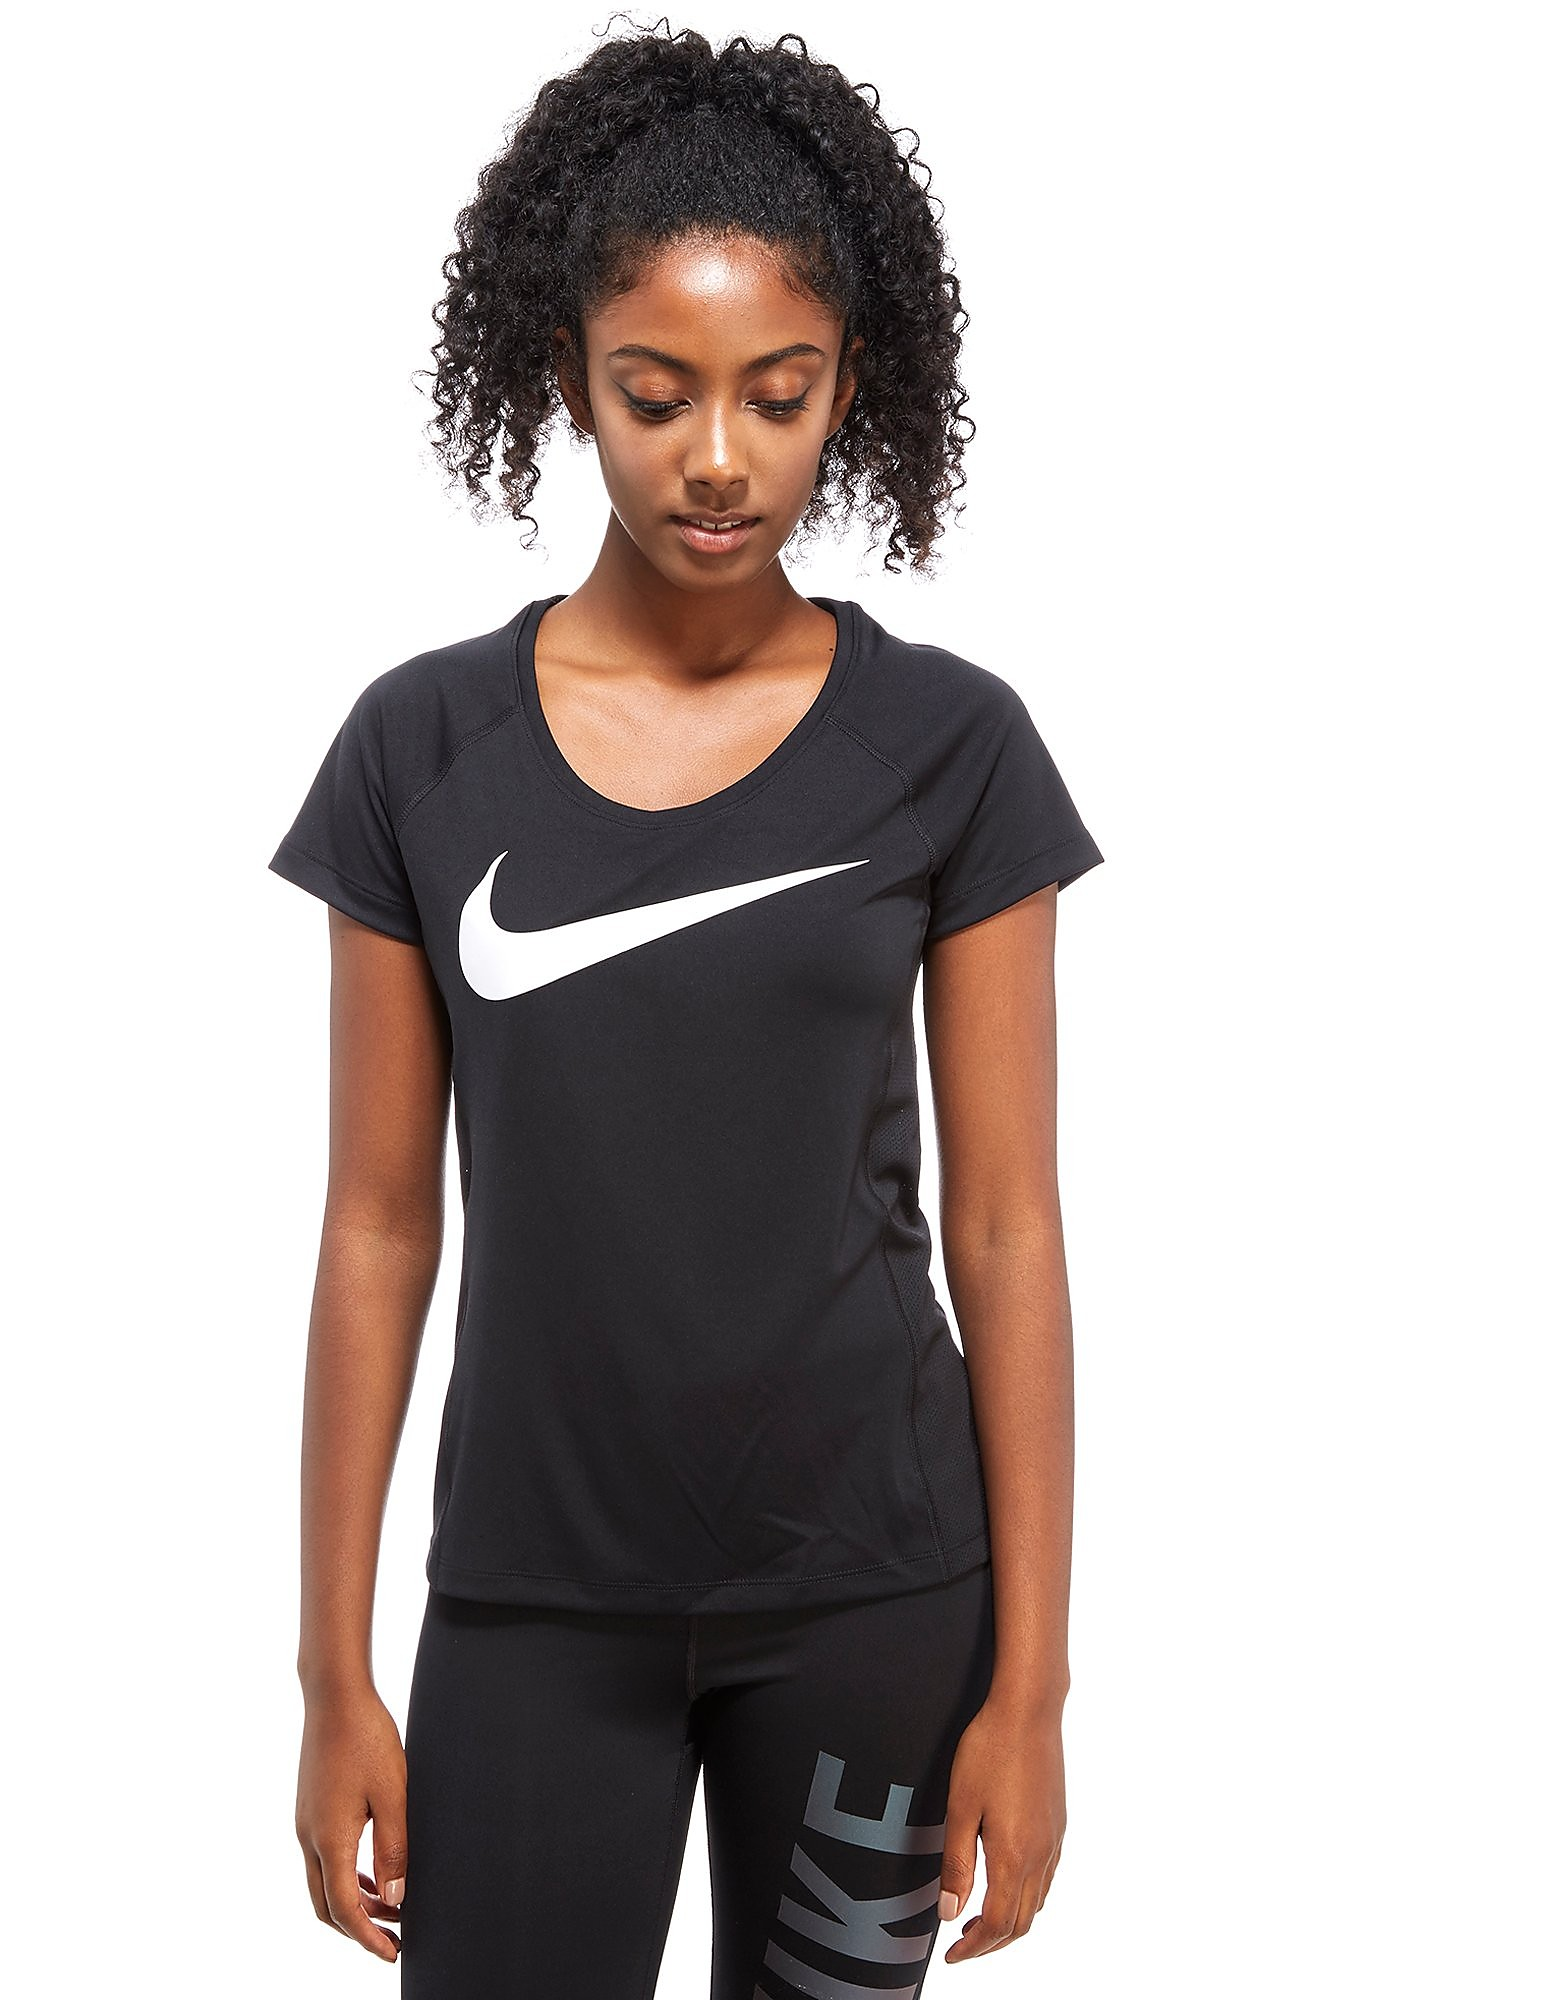 Nike Dry Miler Short Sleeve Running Top